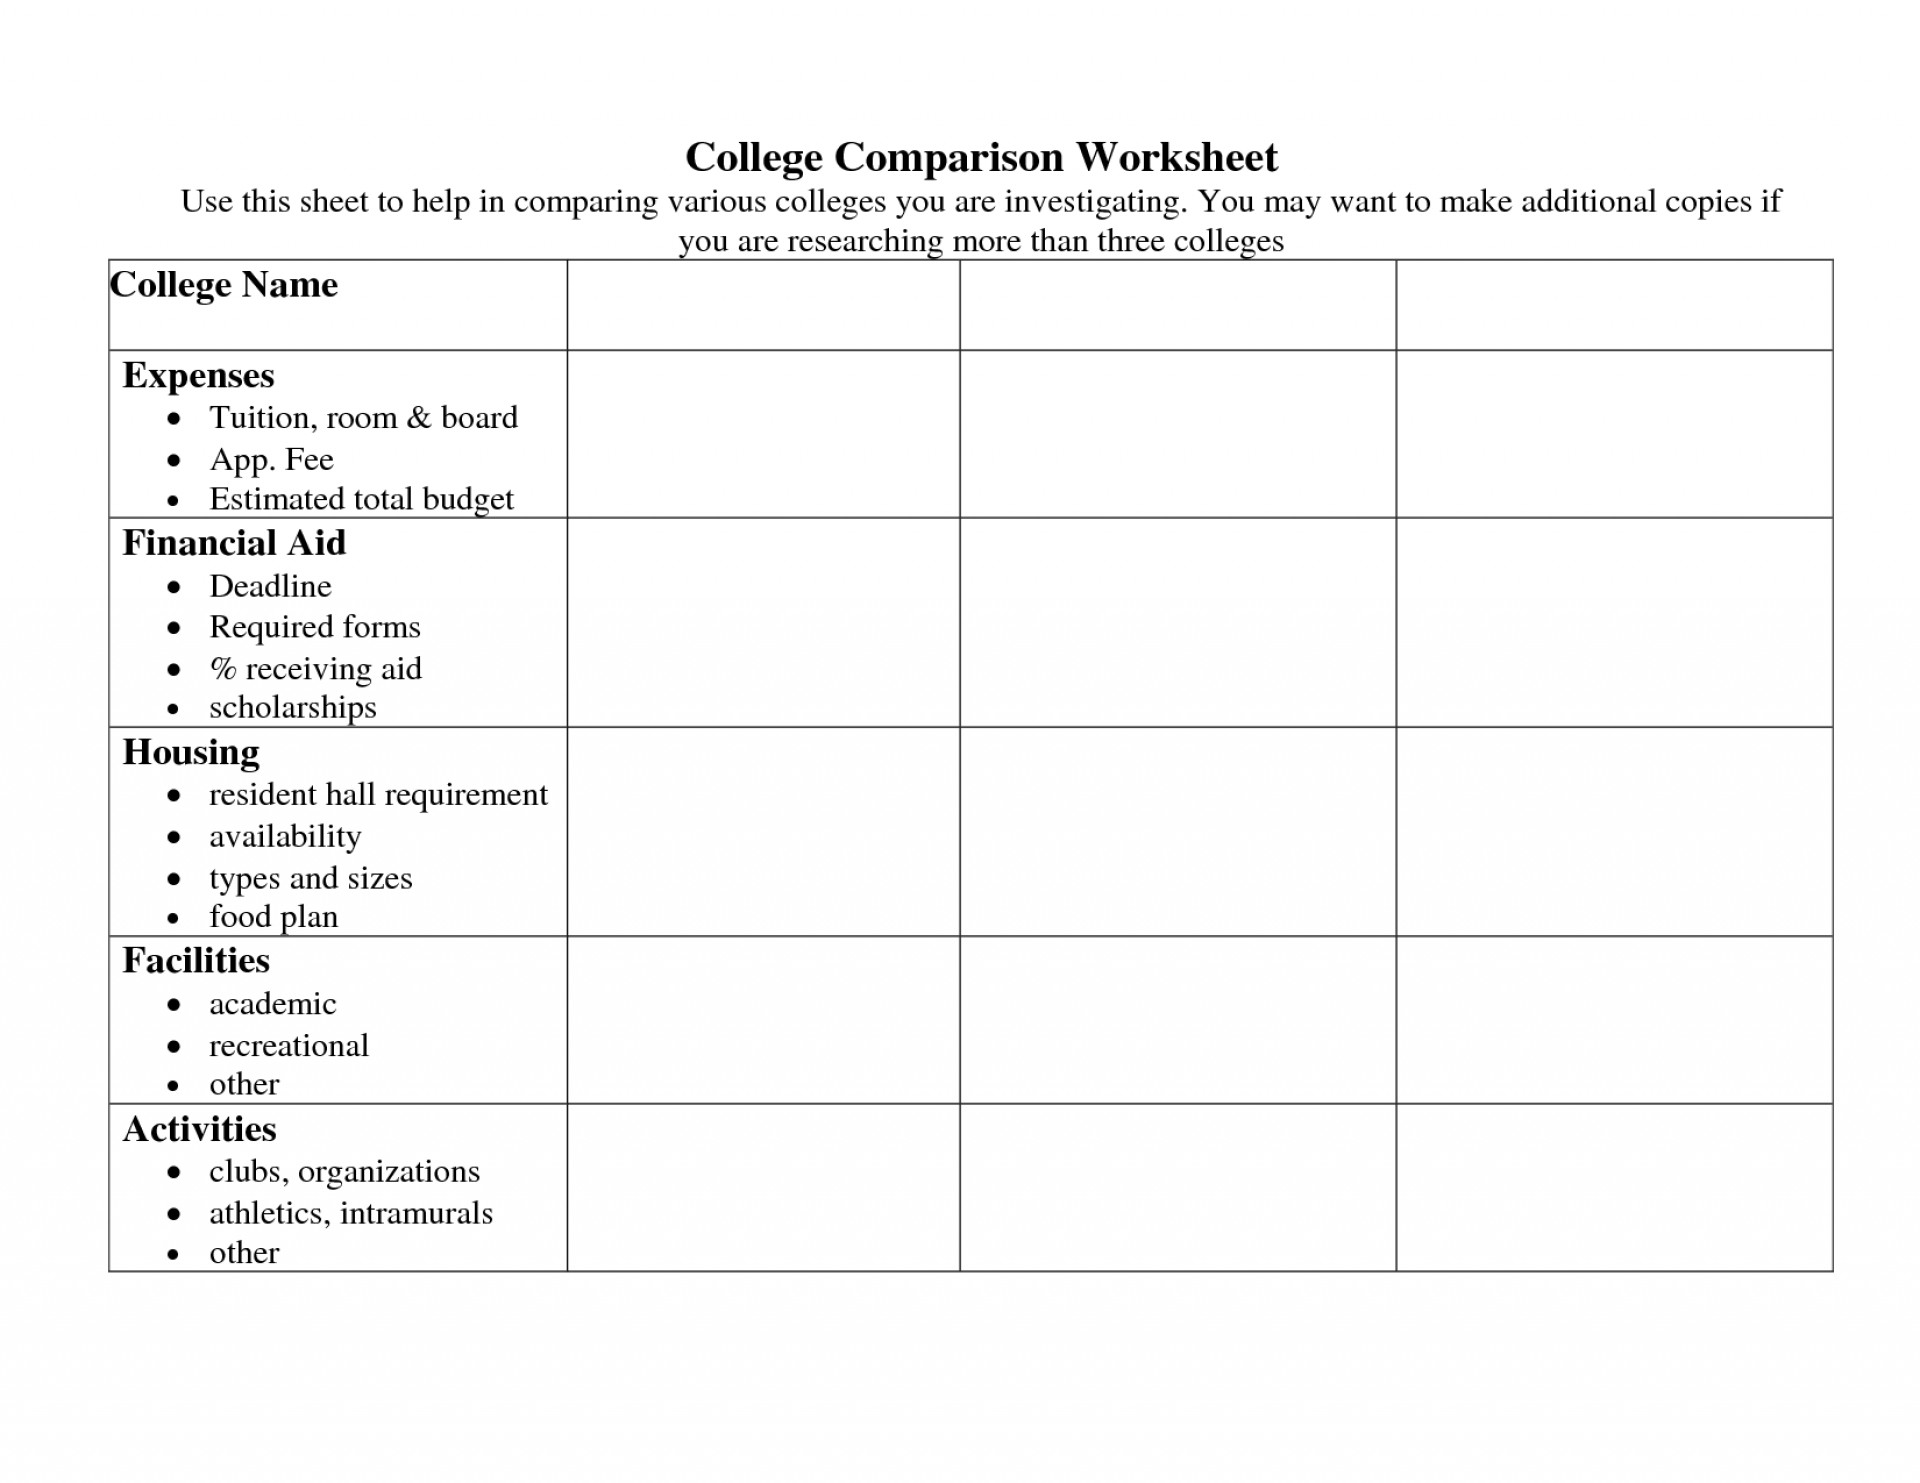 027 Compare And Contrast Essay Graphic Organizer Example College 652630 Wondrous Middle School 1920